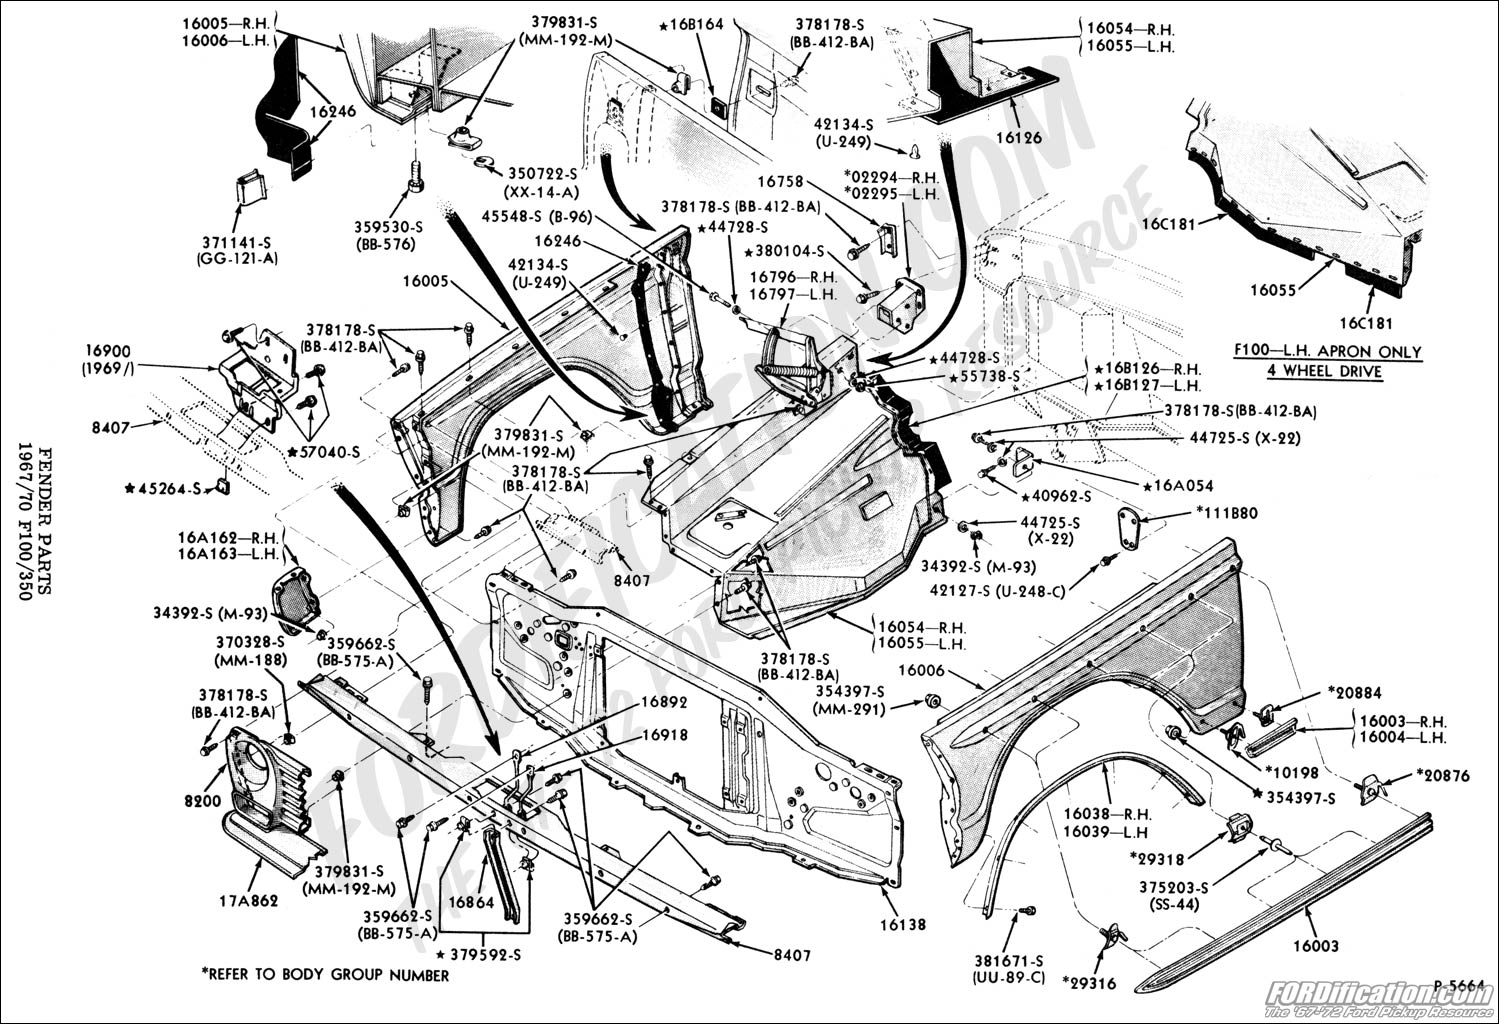 Sending Unit Wiring Diagram in addition 764826 Steering Column Issue After Converting Power Steering Please Help also OL7l 18078 together with 77 Jeep Wiring Diagram further Showthread. on 1974 ford bronco steering column wiring diagram